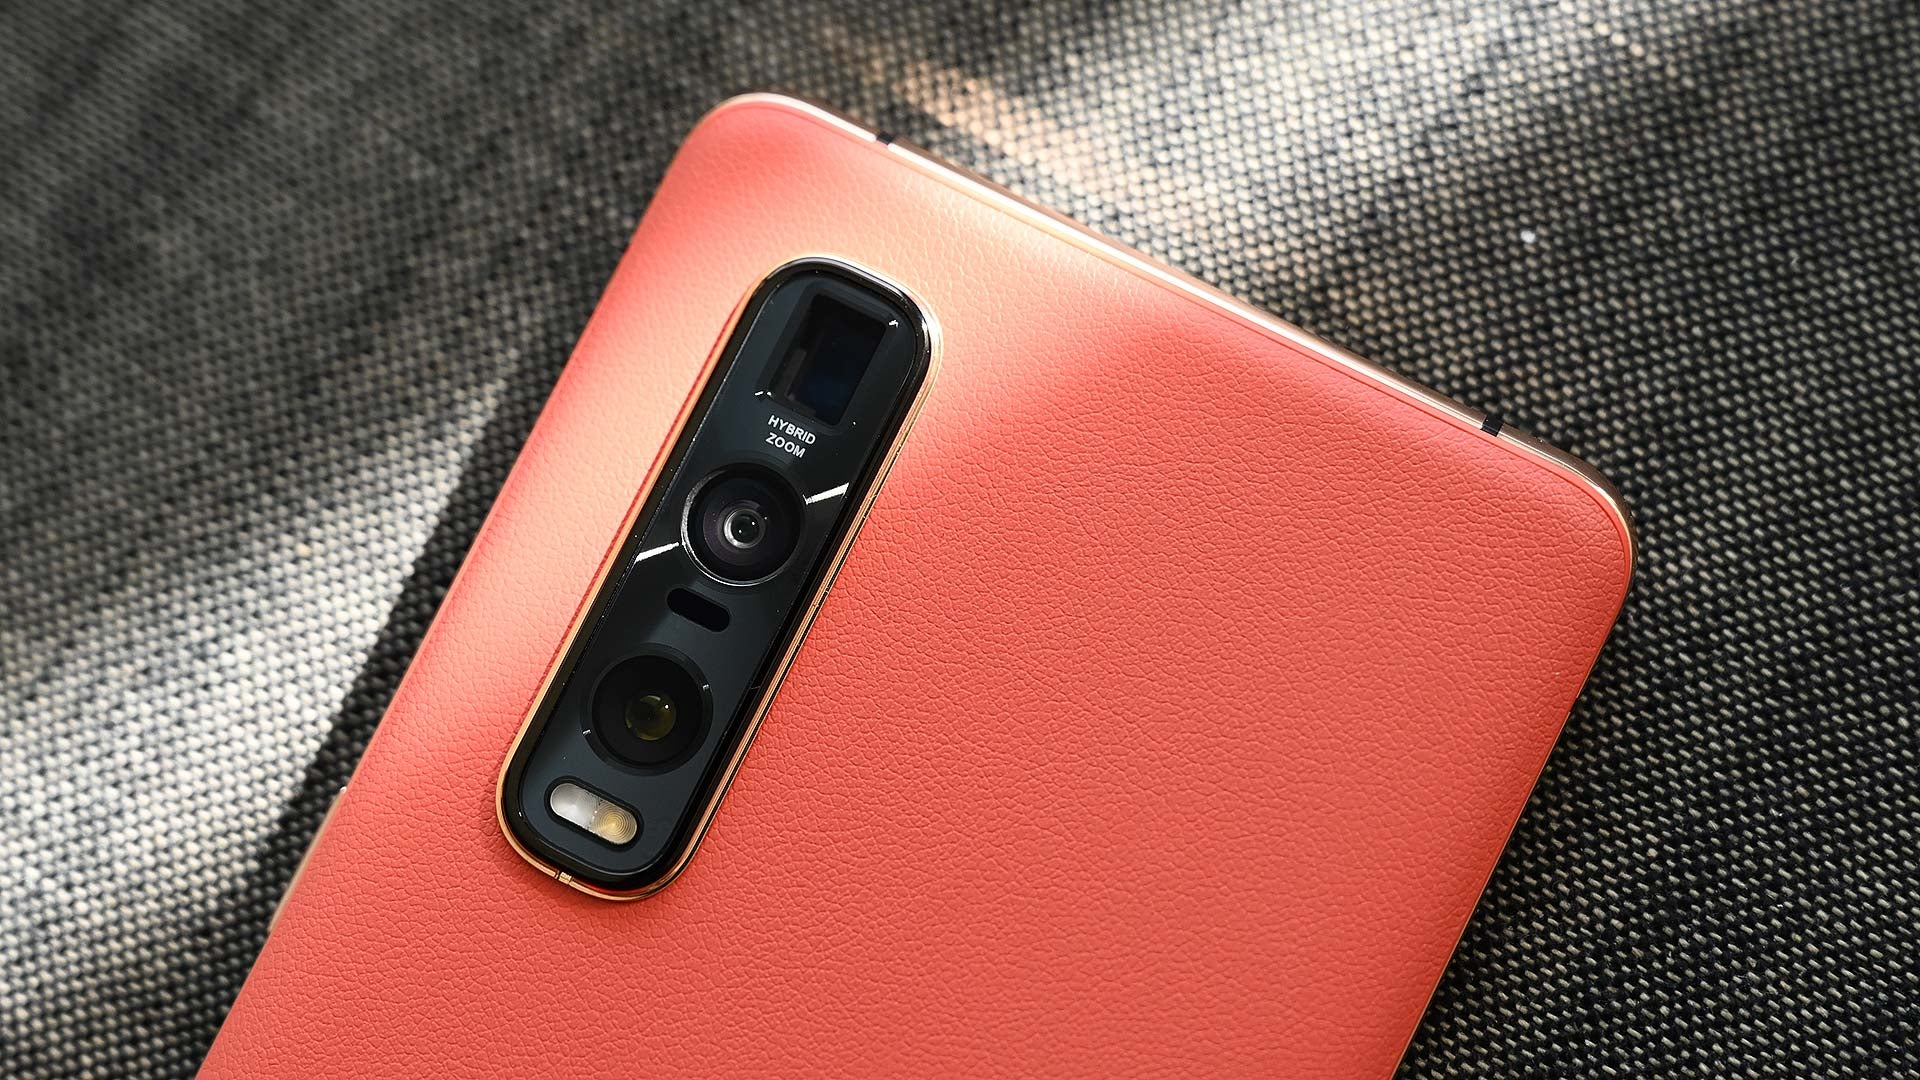 Oppo Find X2 First Look: A New Bar For Refresh Rates On Phones 3